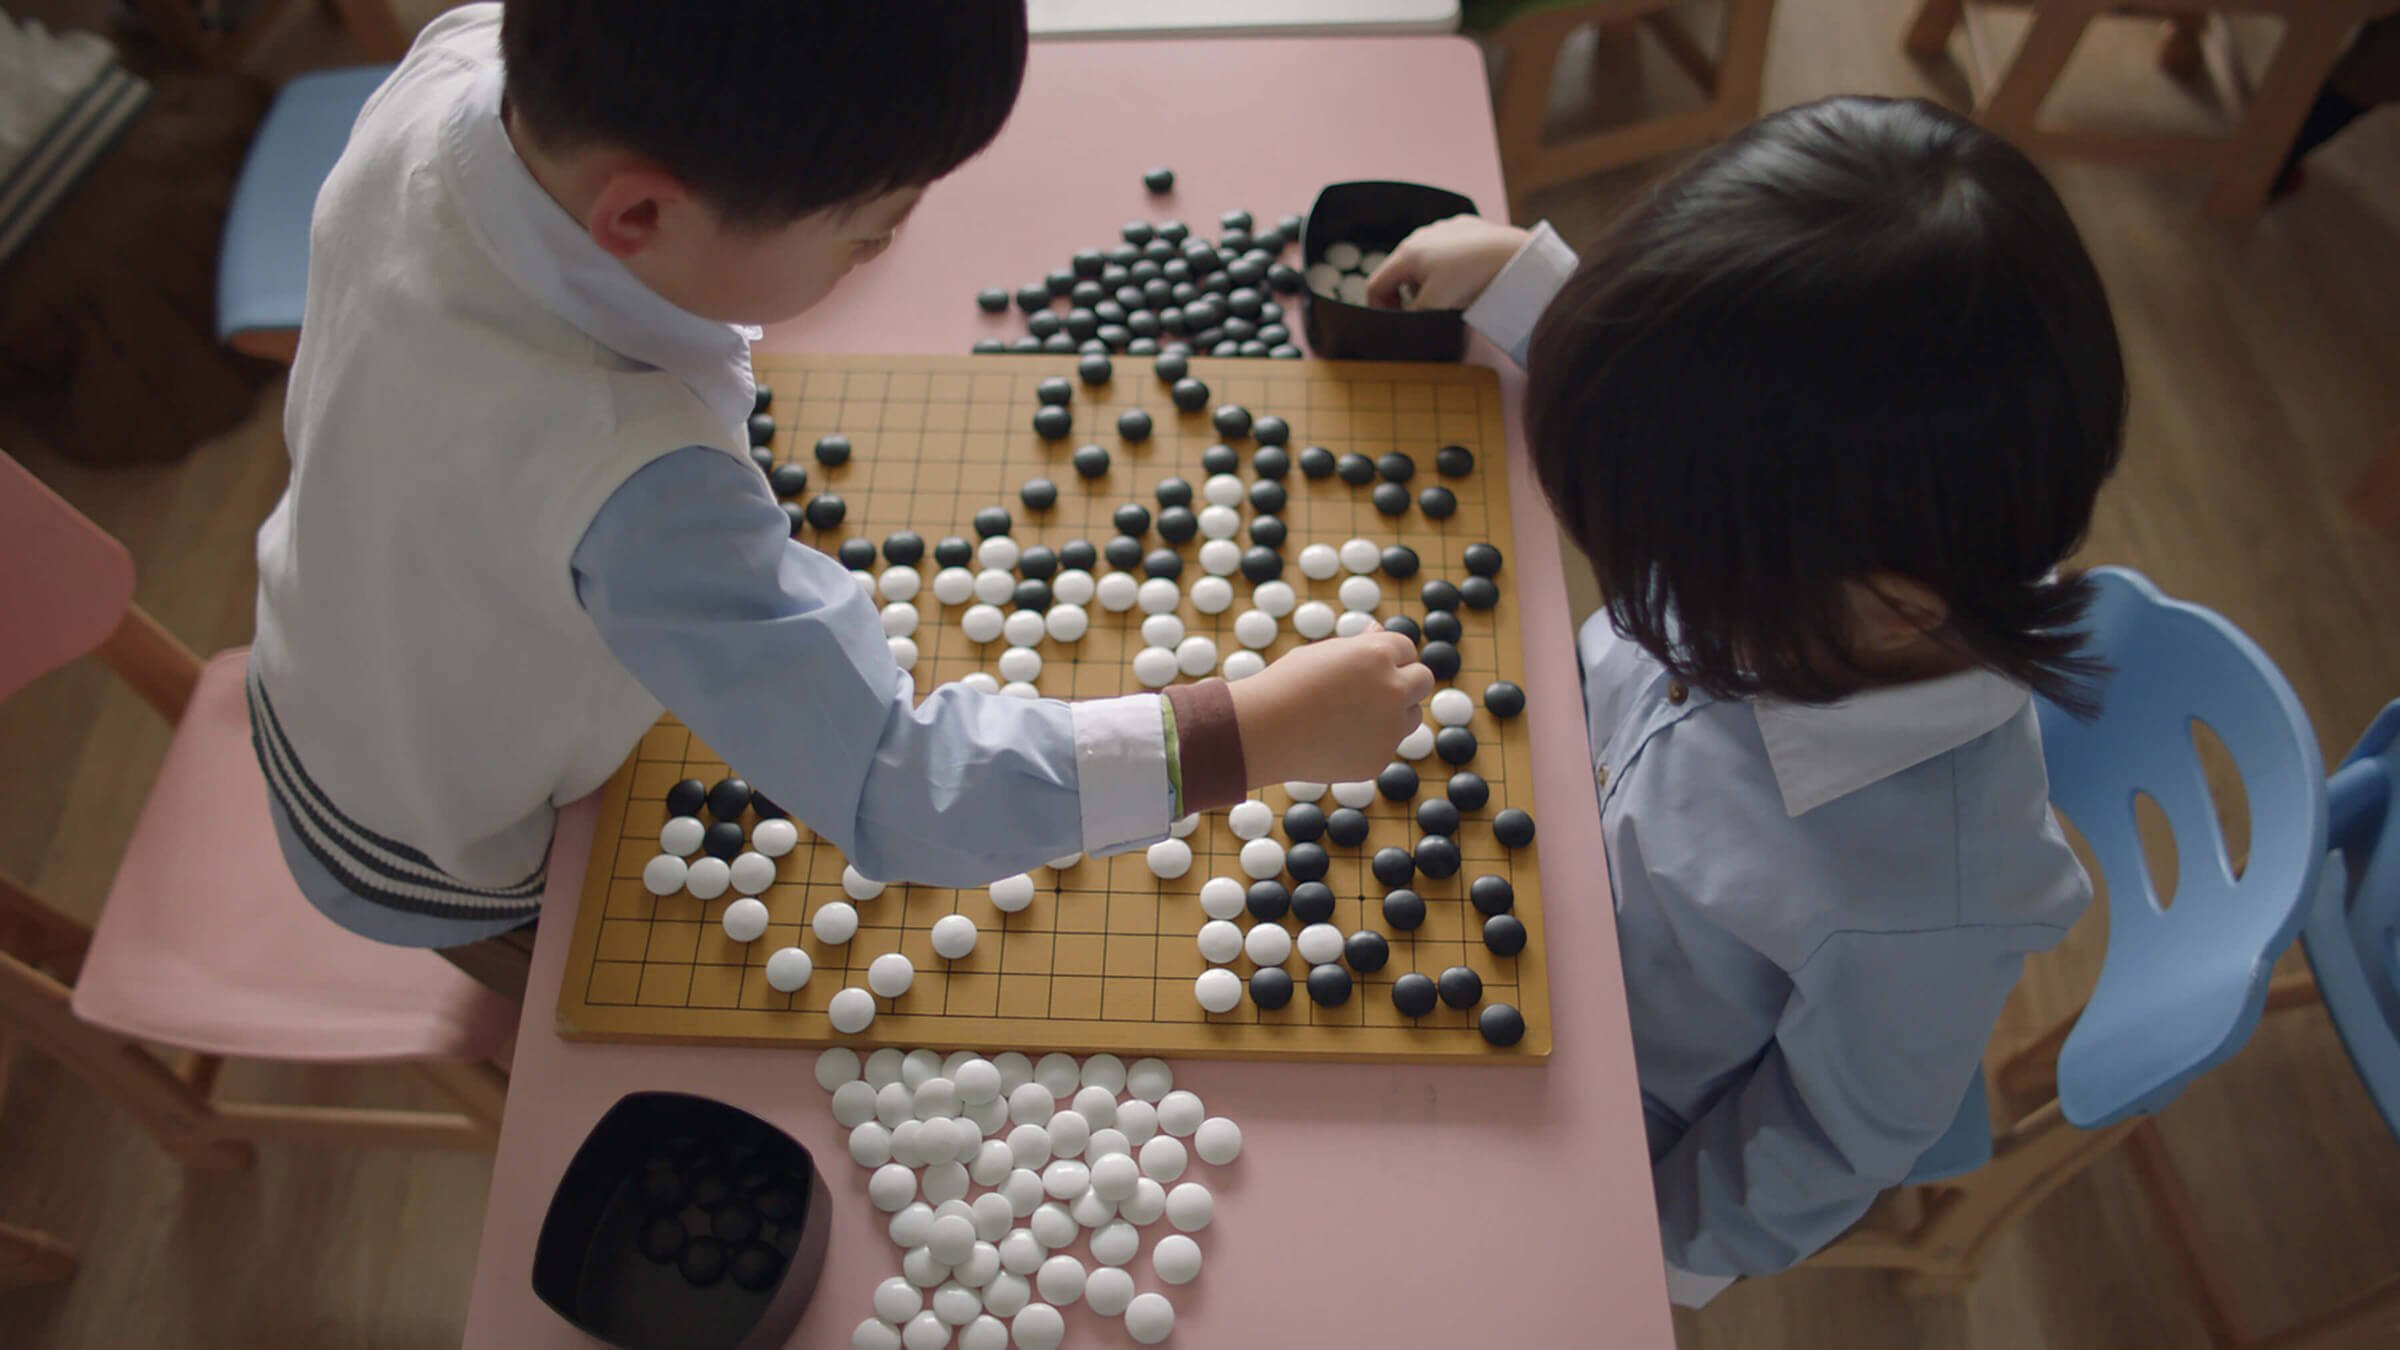 Google's AlphaGo can now teach itself from scratch to beat humans